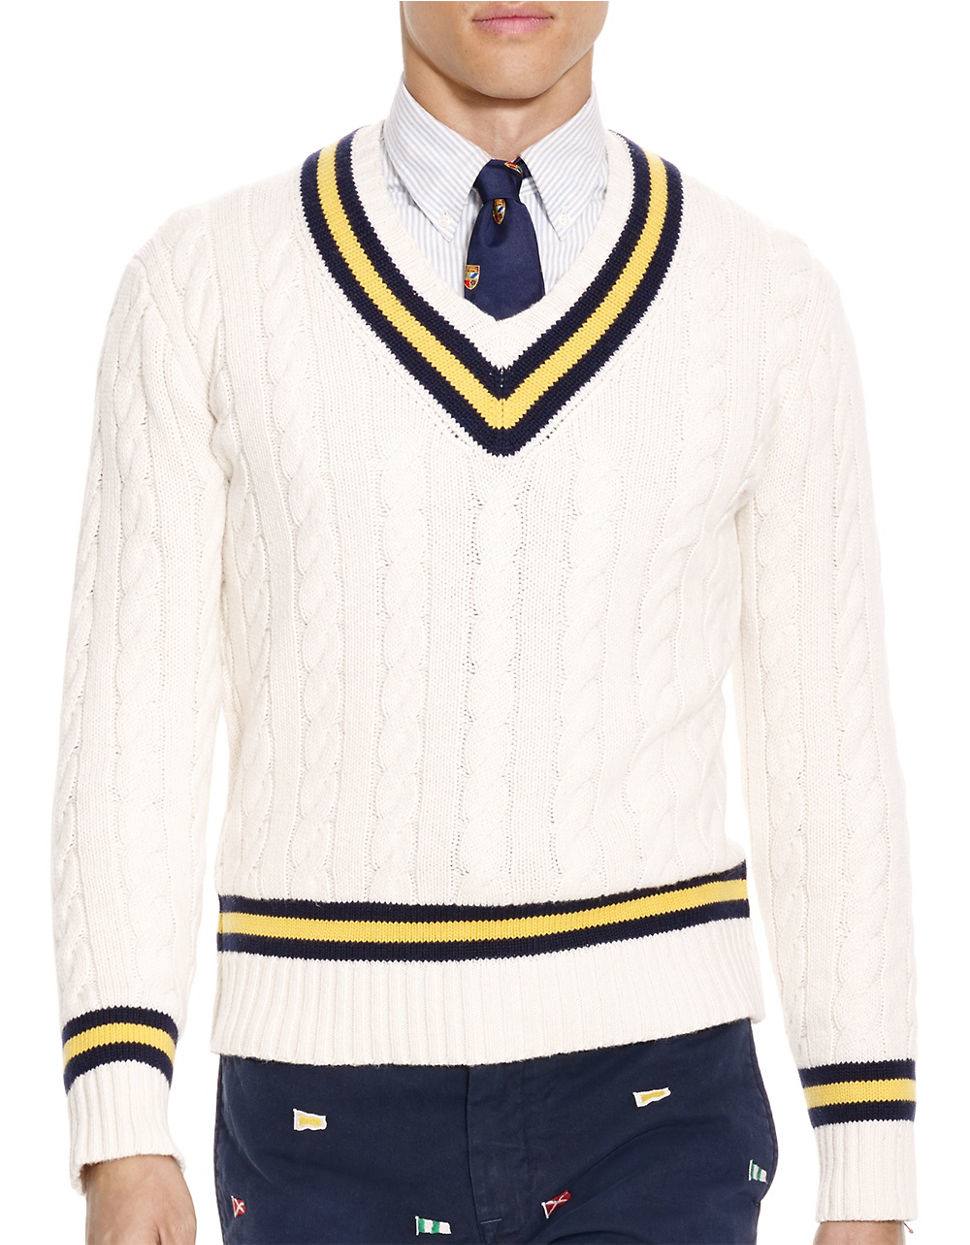 Lyst Polo Ralph Lauren Cable Knit Cricket Sweater In Blue For Men